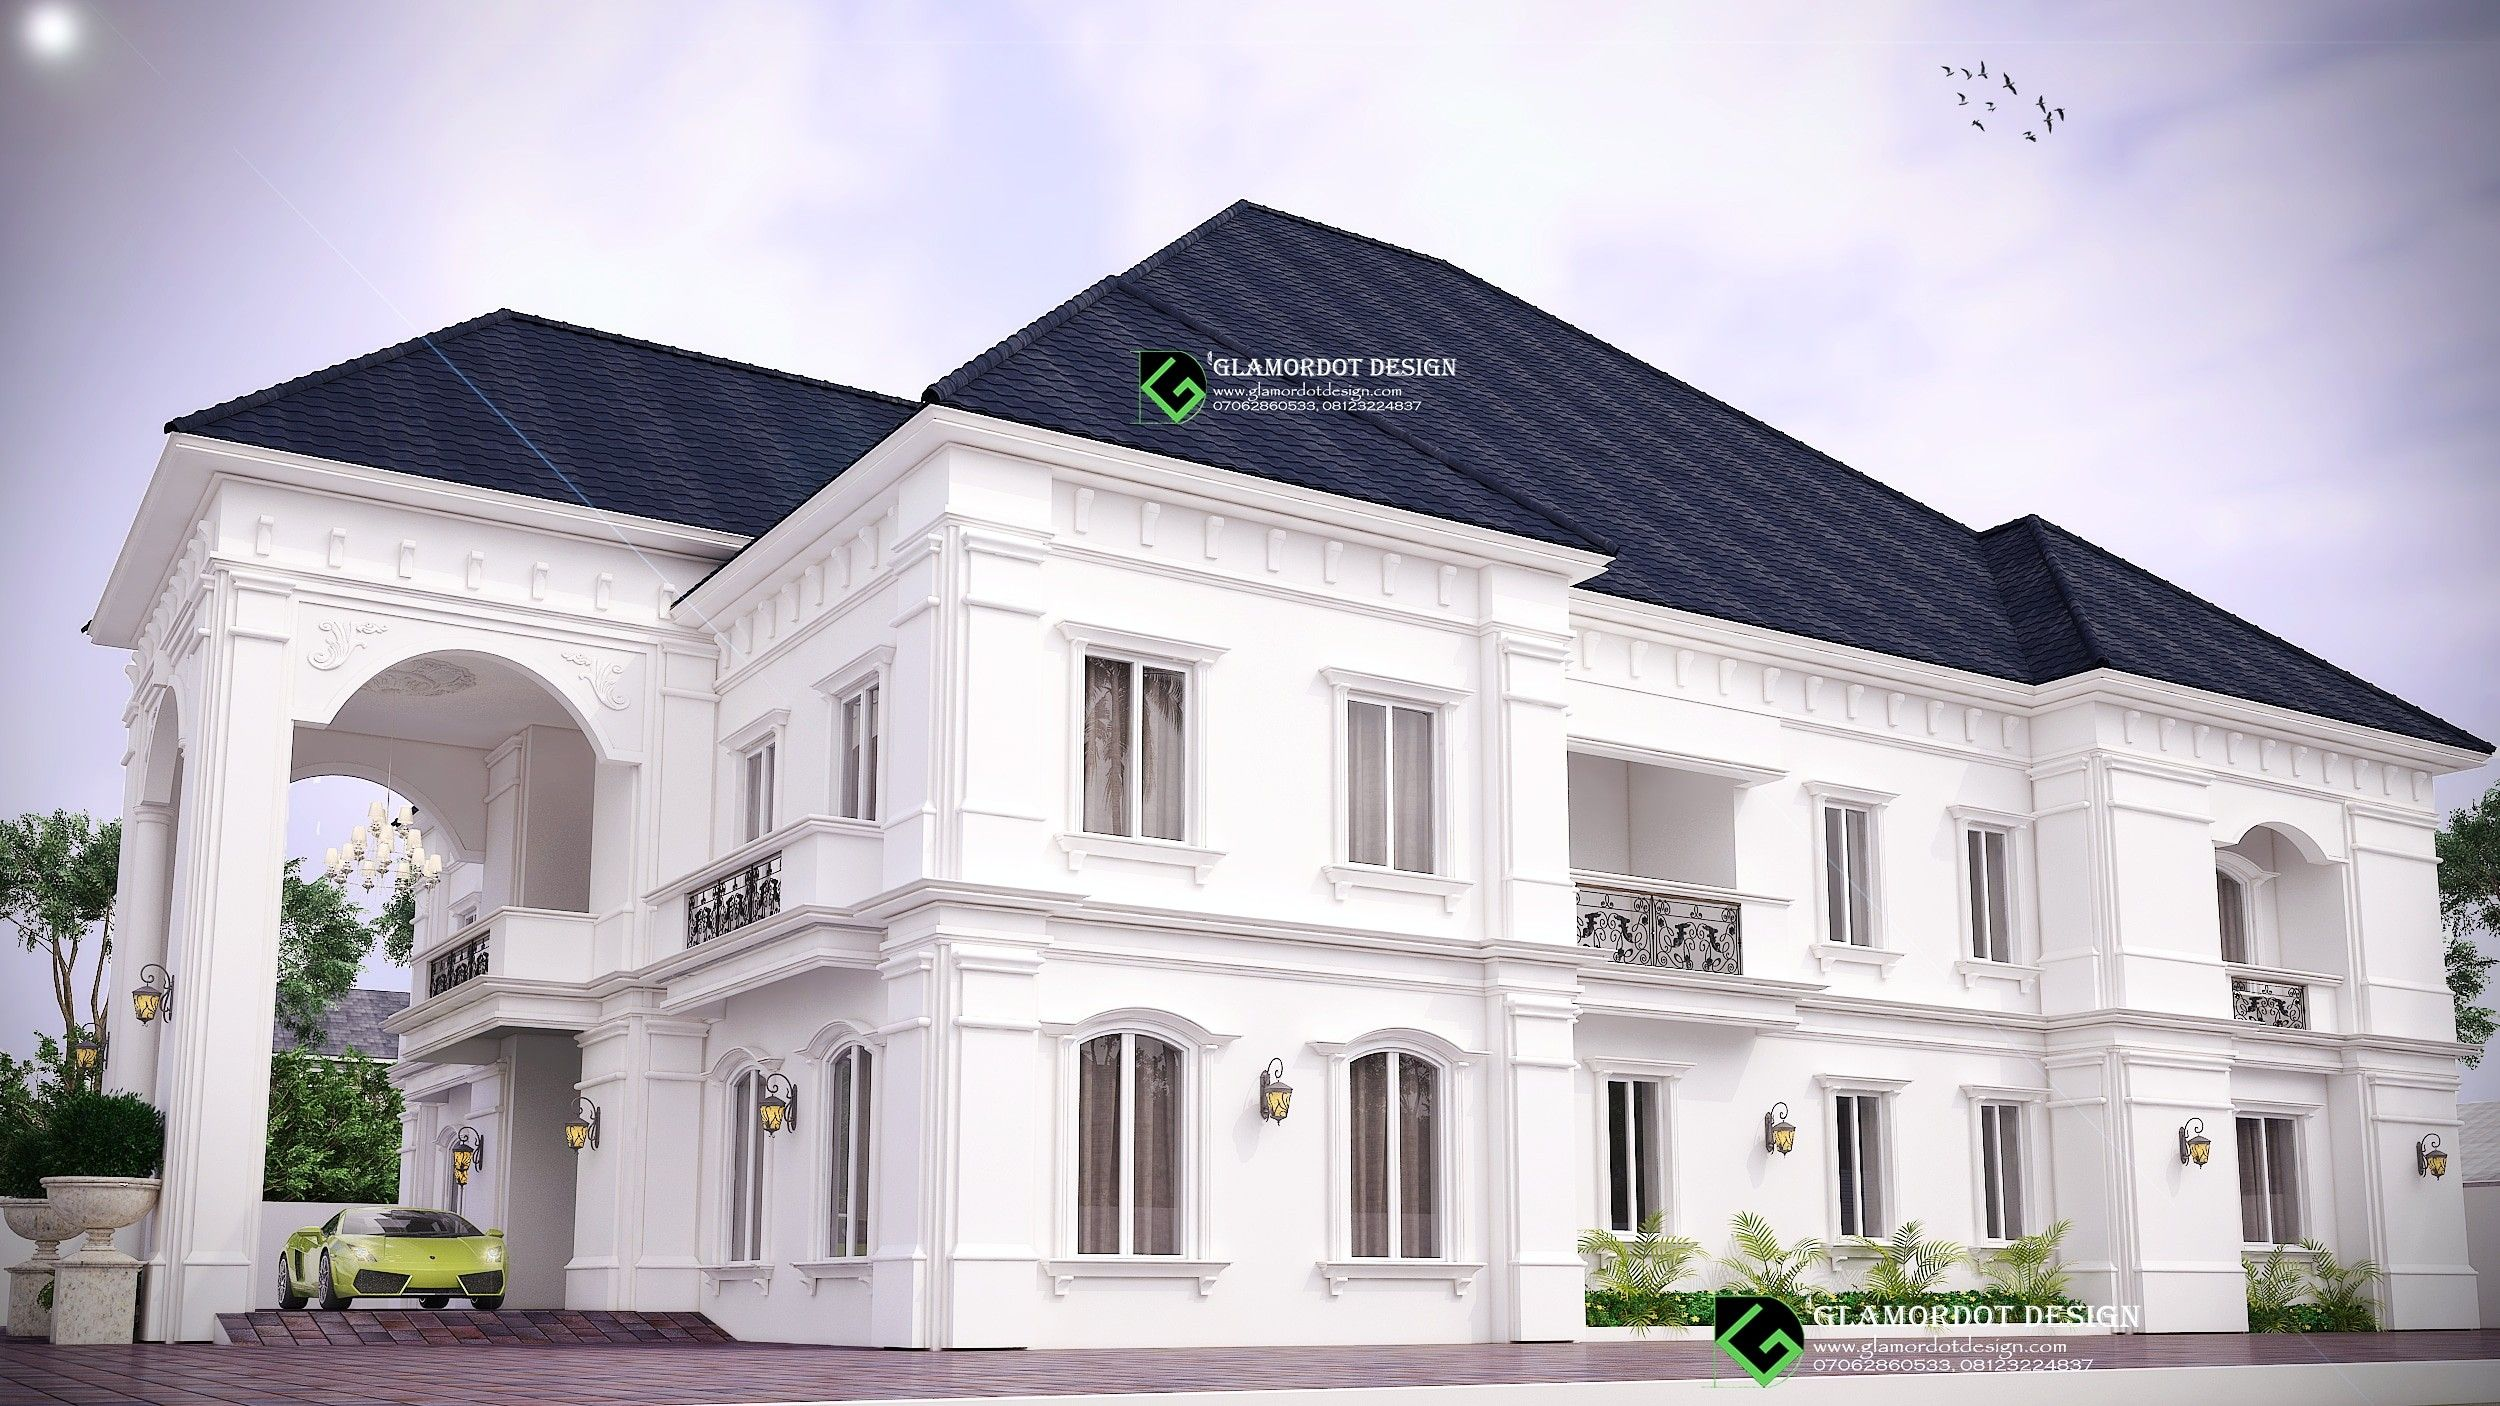 Architectural Design Of A Proposed 5 Bedroom Duplex Design Mansion Designs Duplex Design Architecture Design